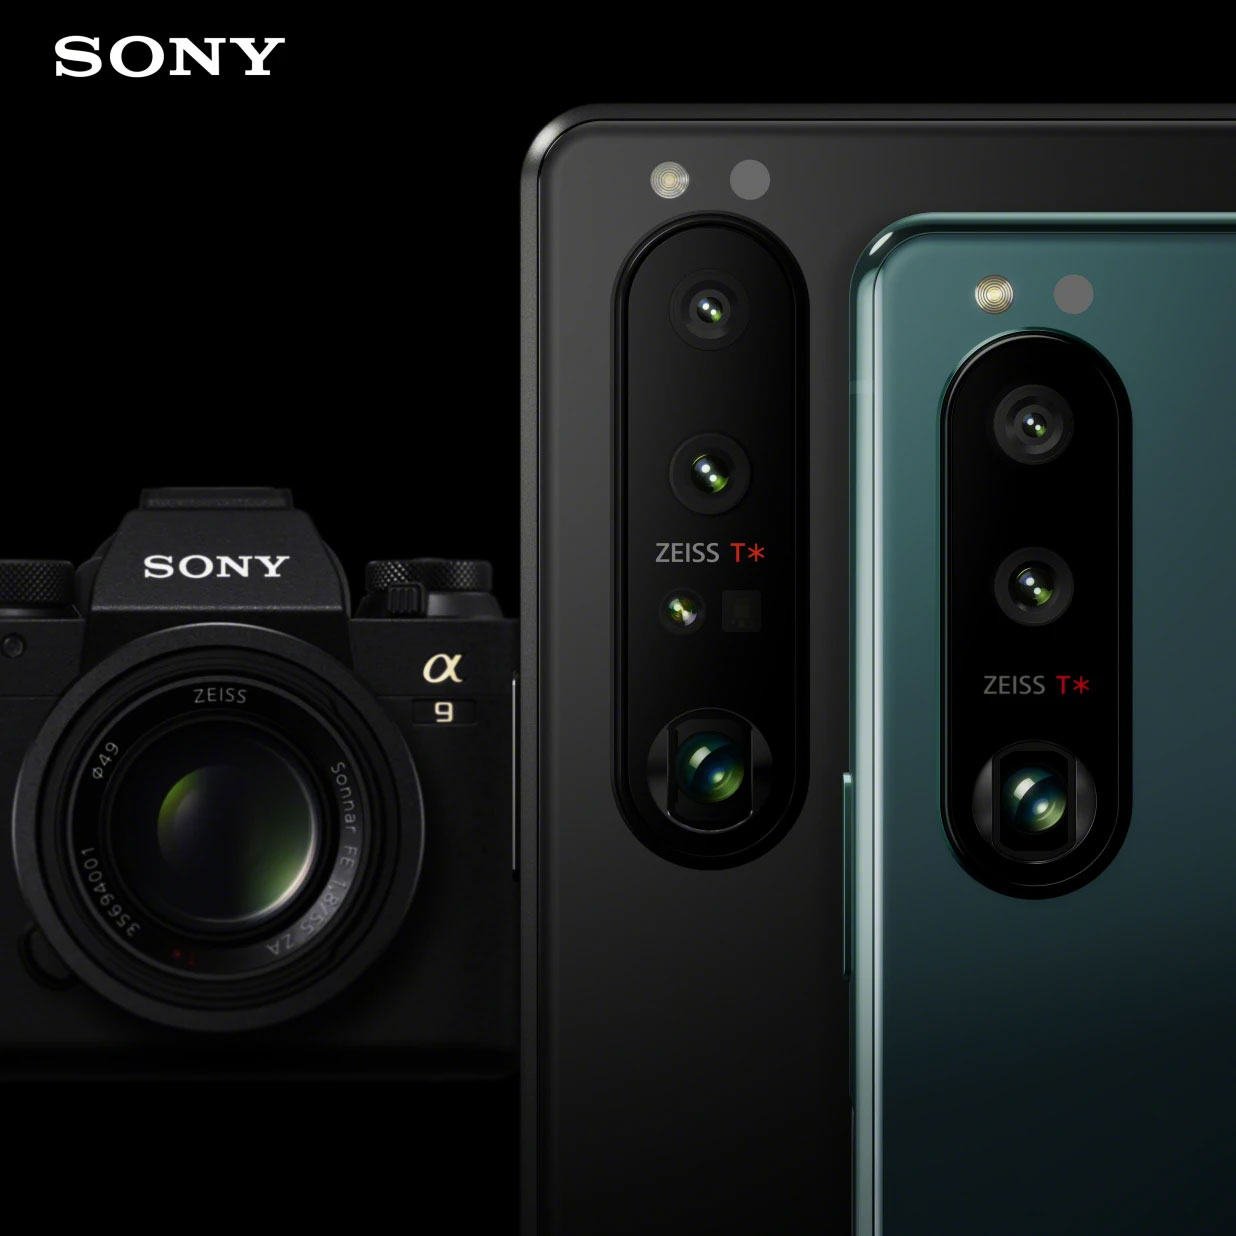 Next-generation Sony Xperia 1 III phone available in August